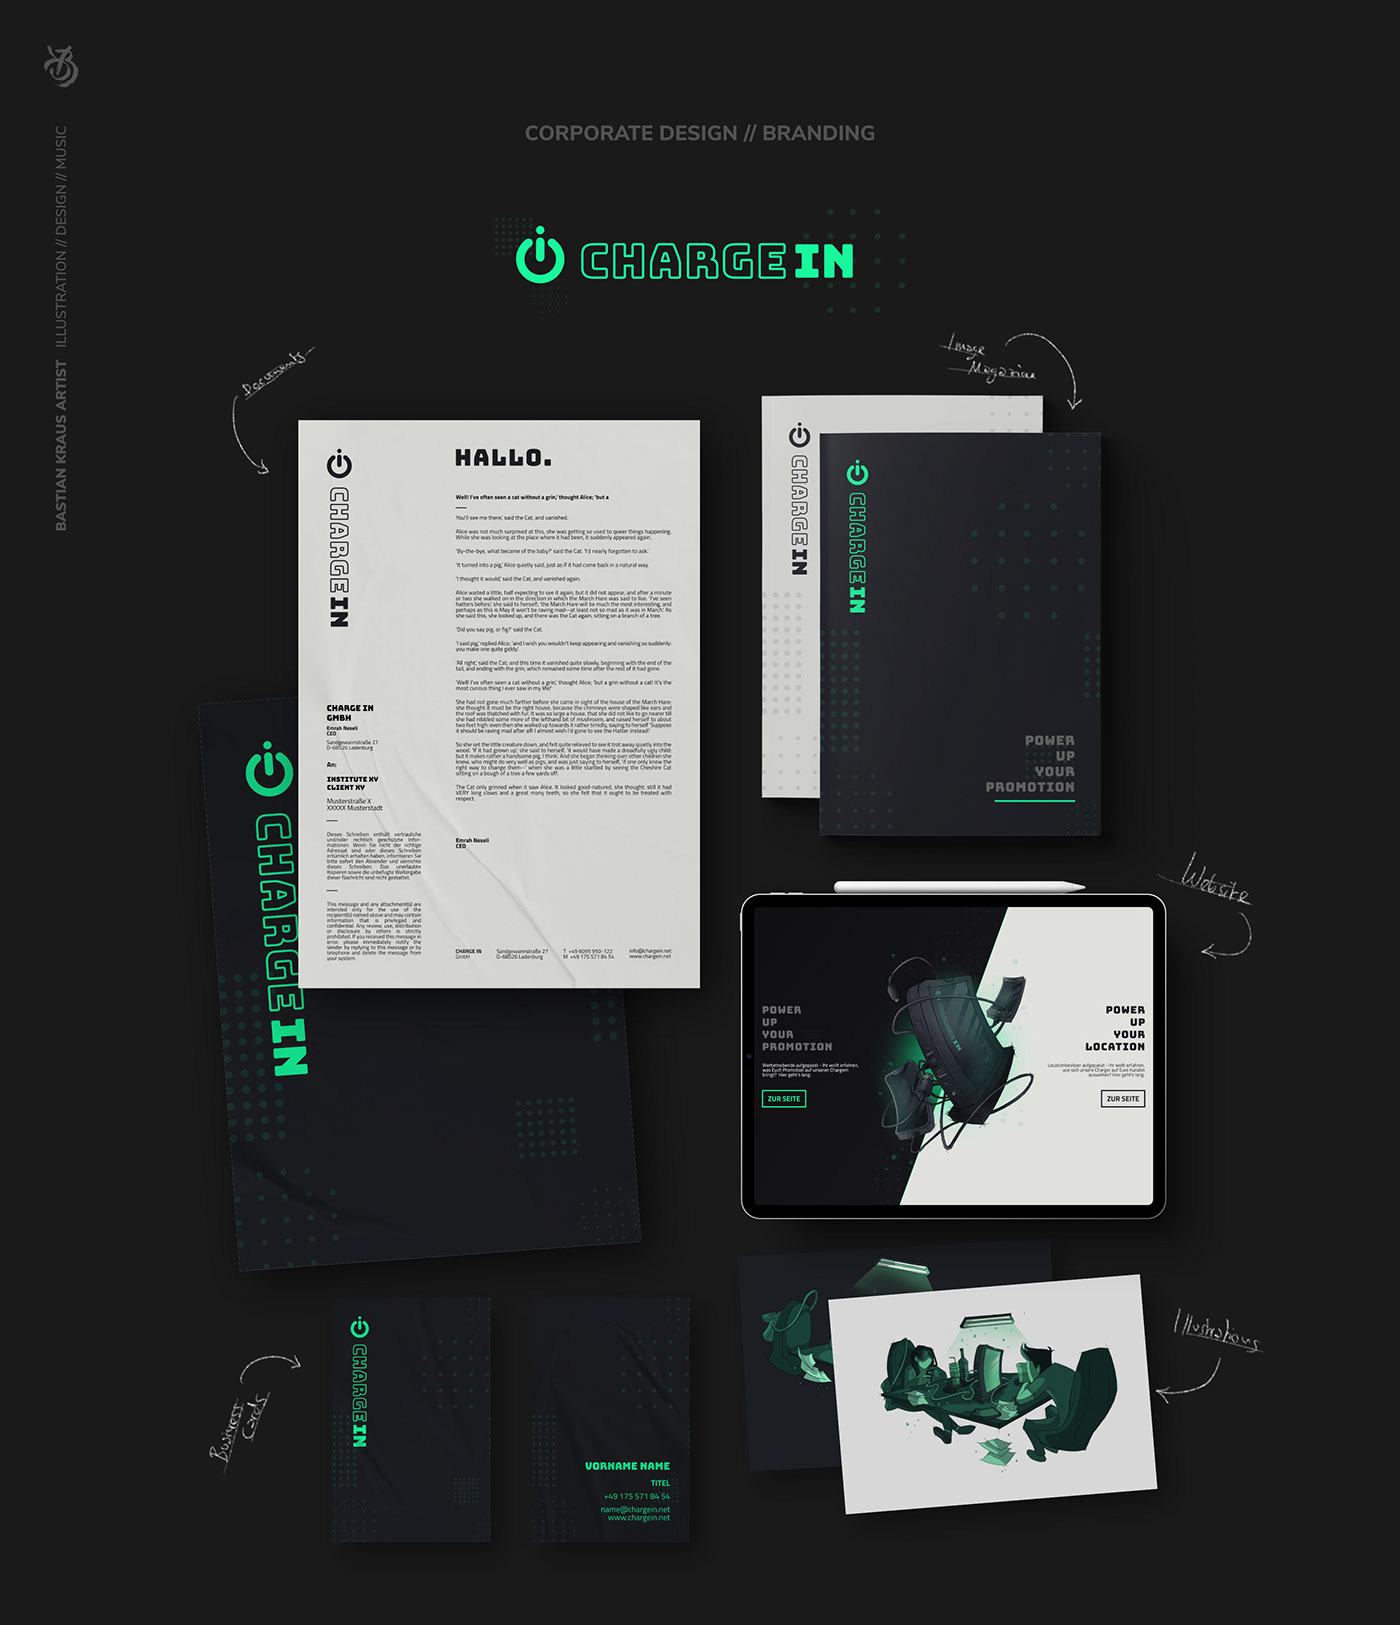 CHARGE IN // Corporate Design